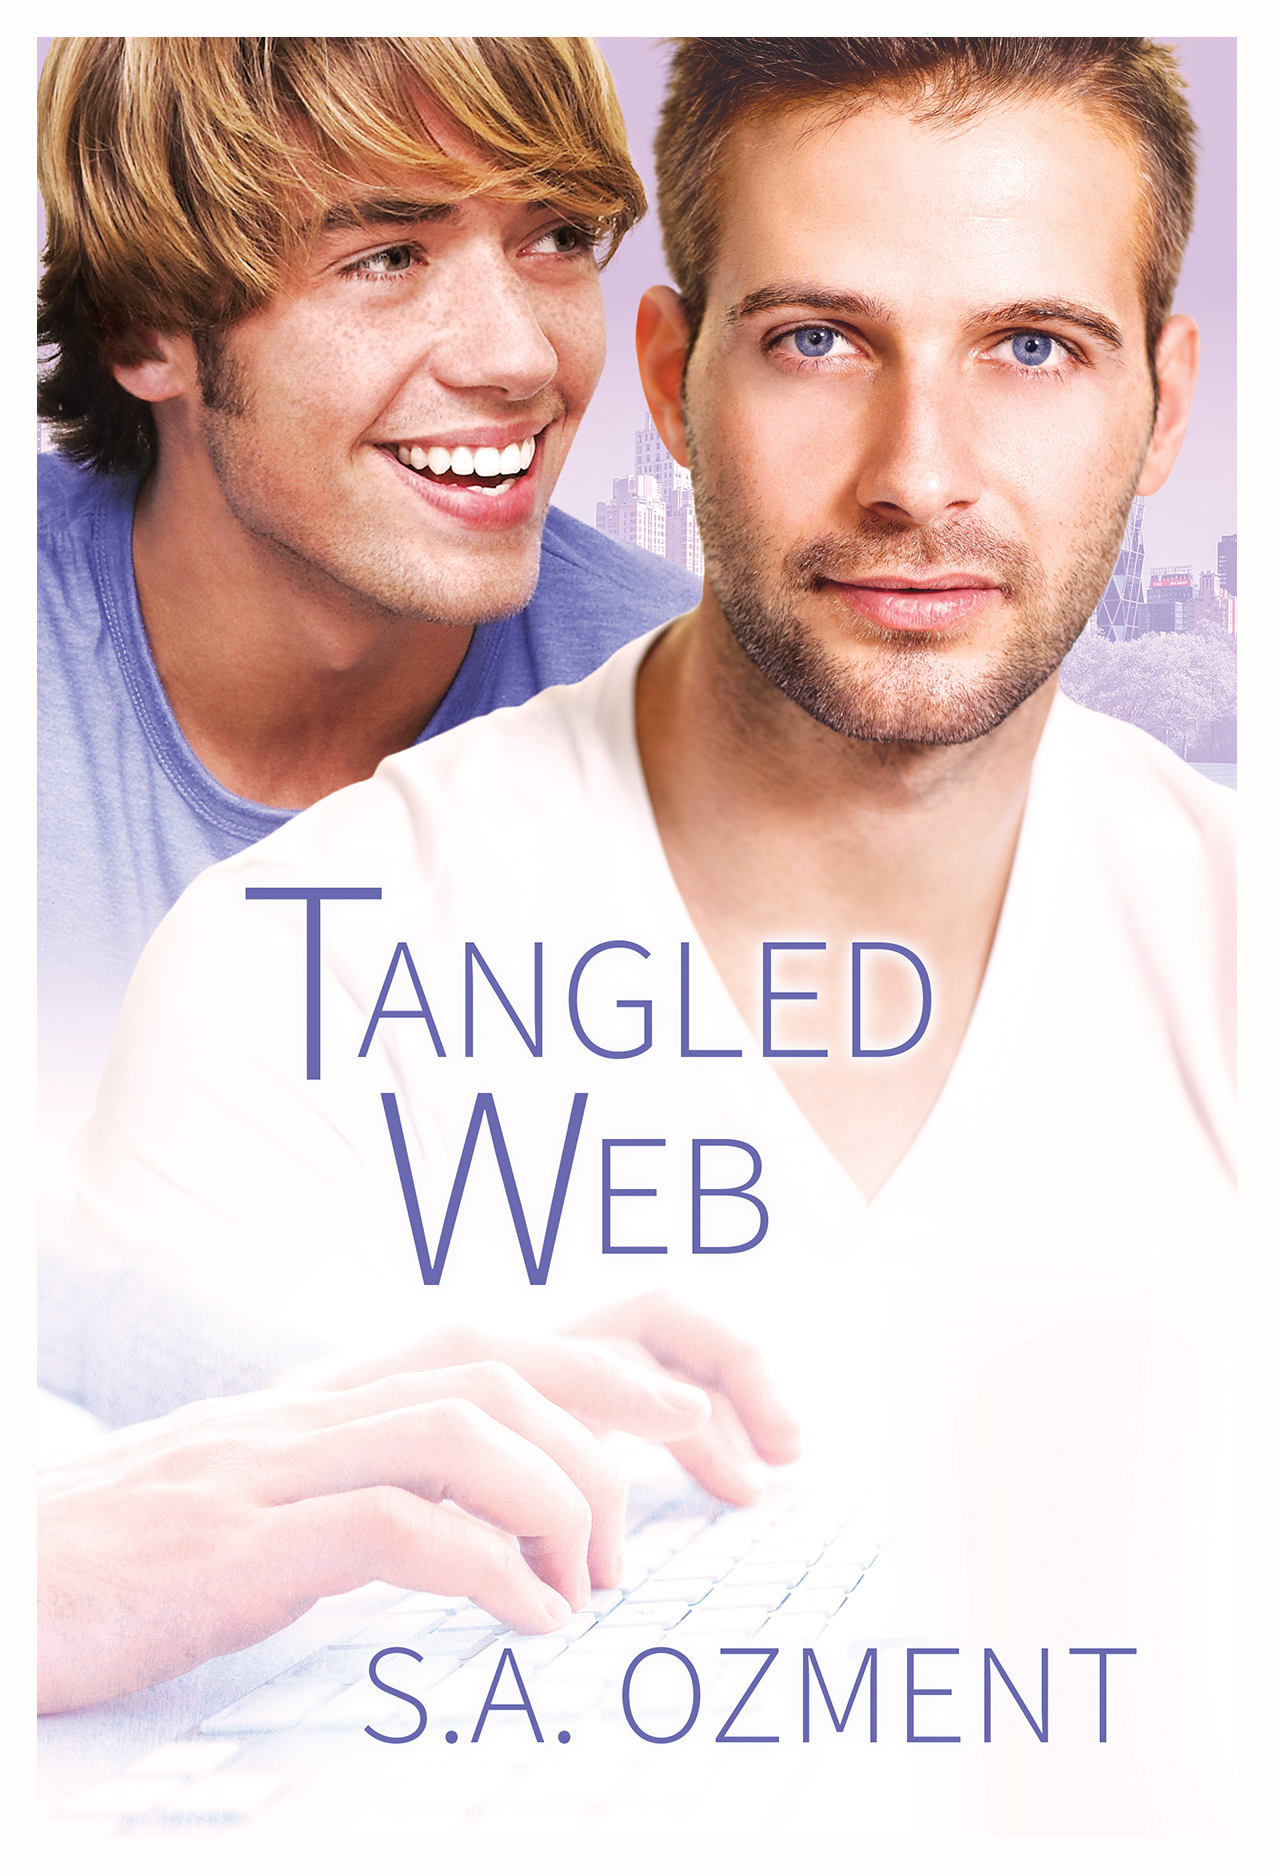 TangledWeb_postcard_front_DSP